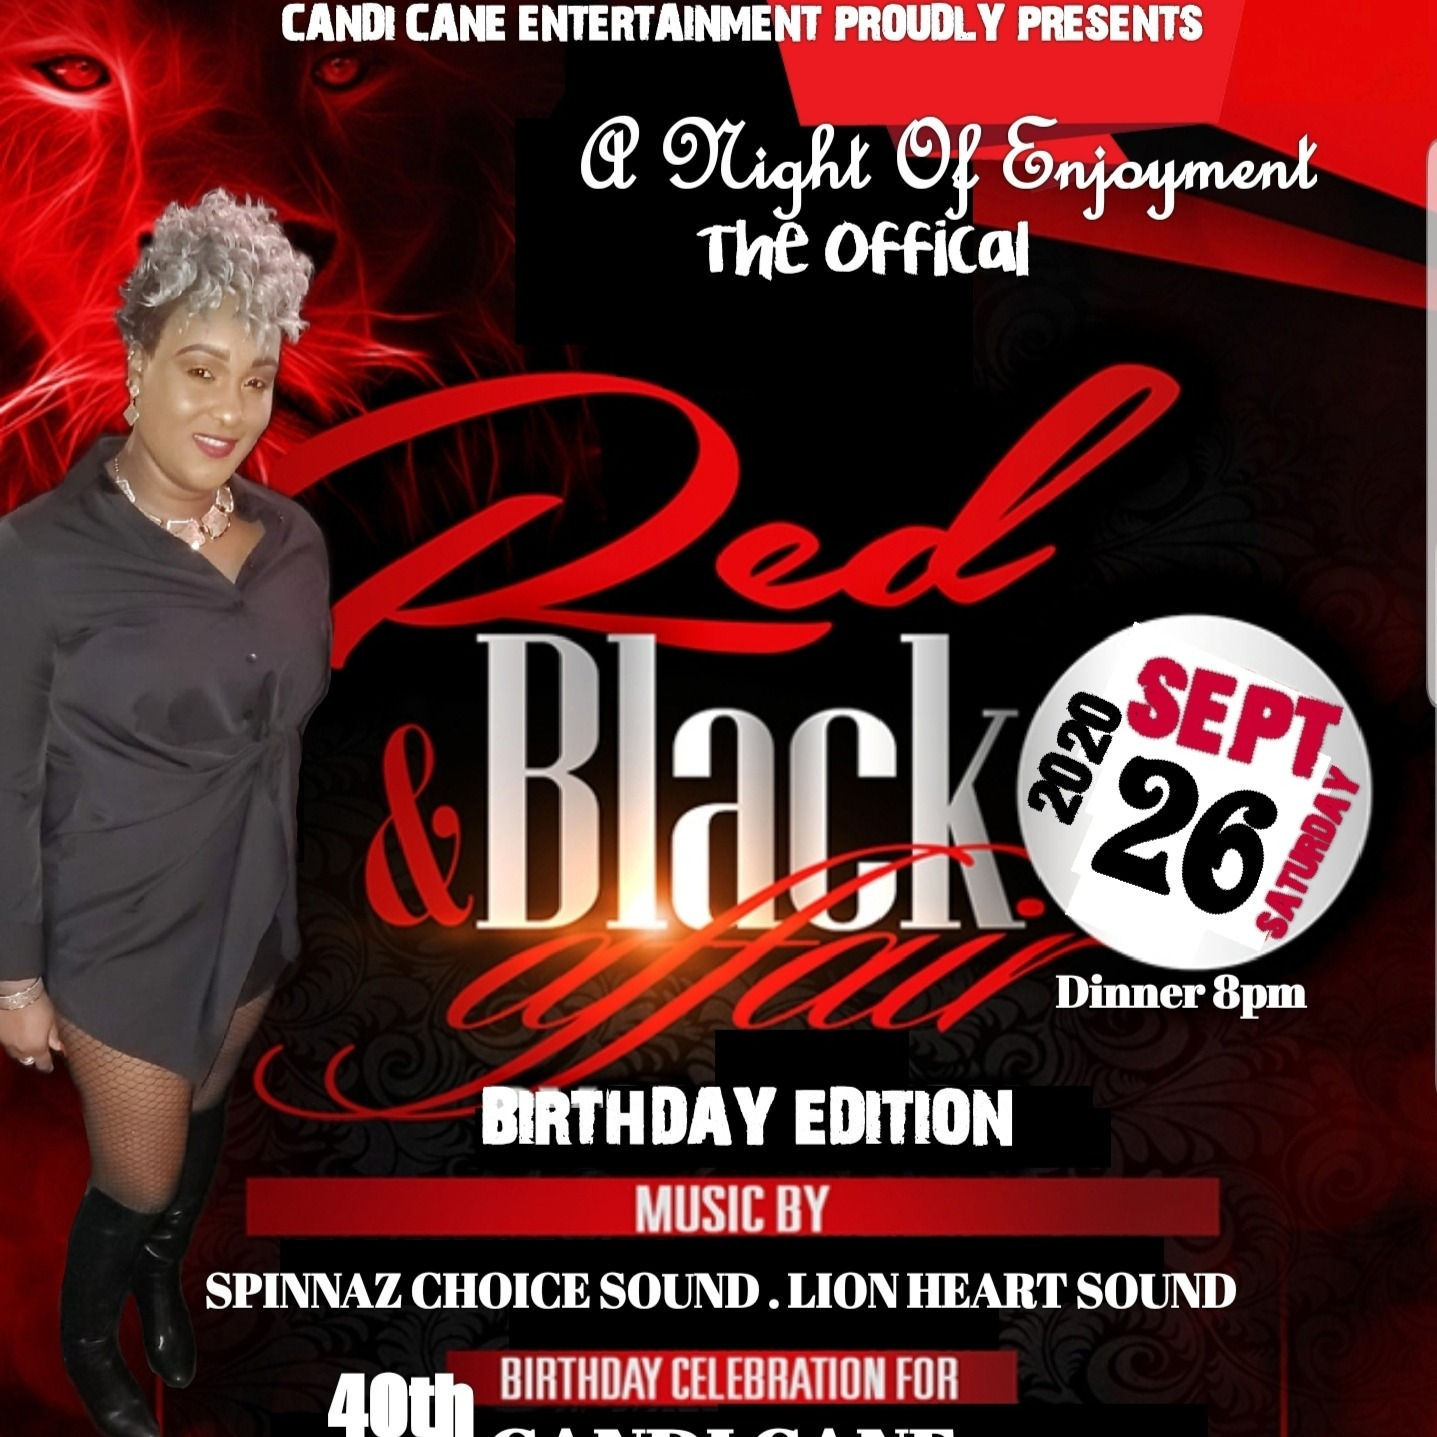 Red and Black Affair - Birthday Edition